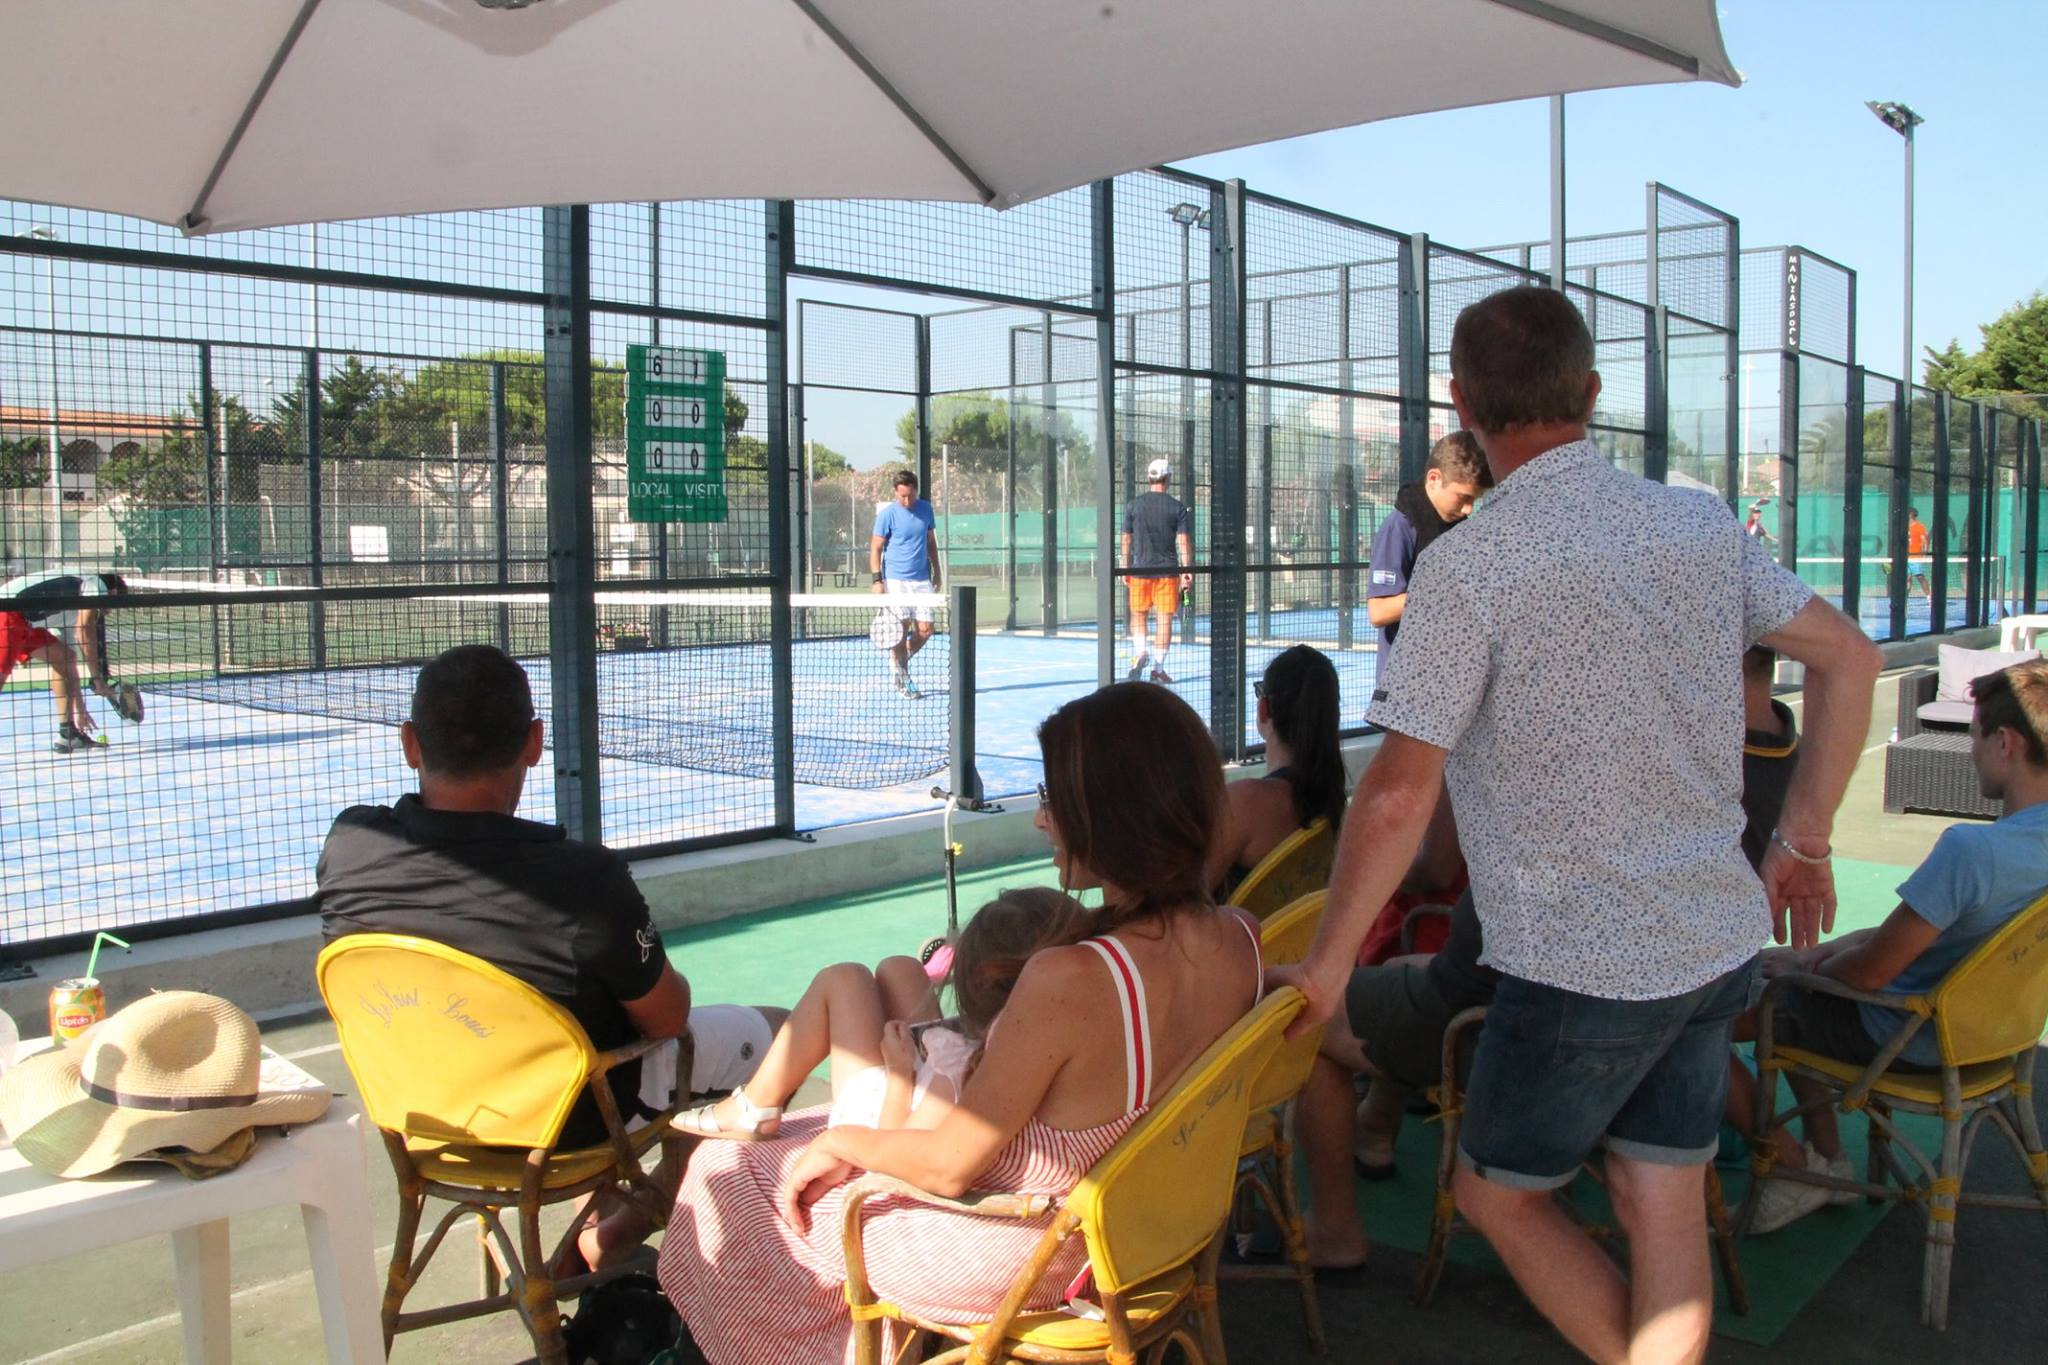 club house valras padel tennis